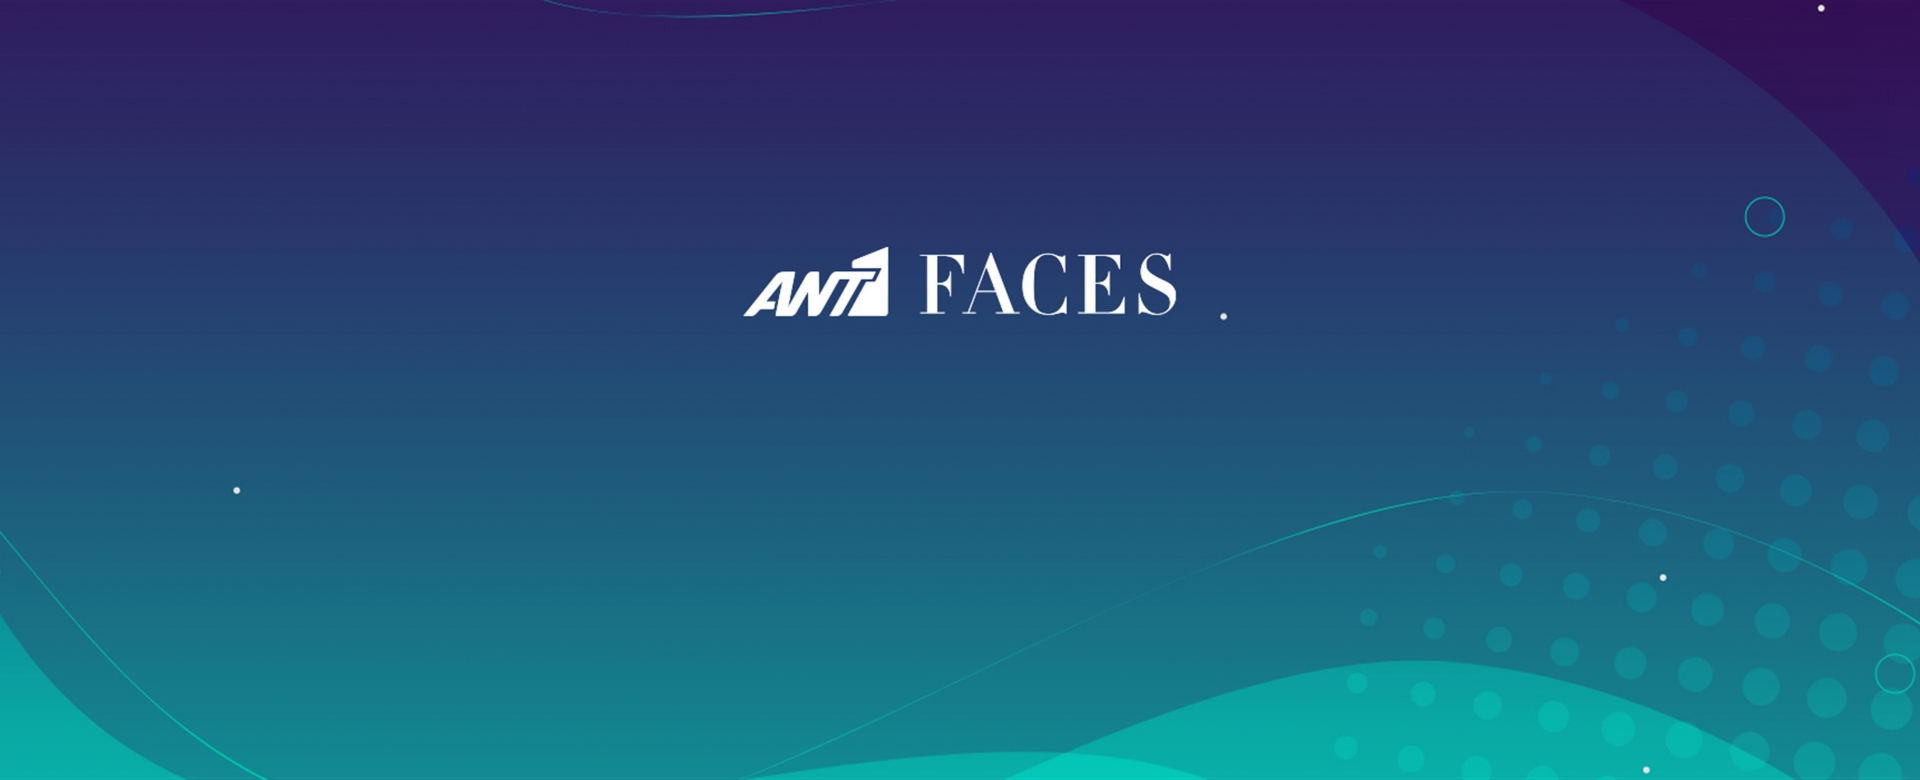 ANT1 FACES